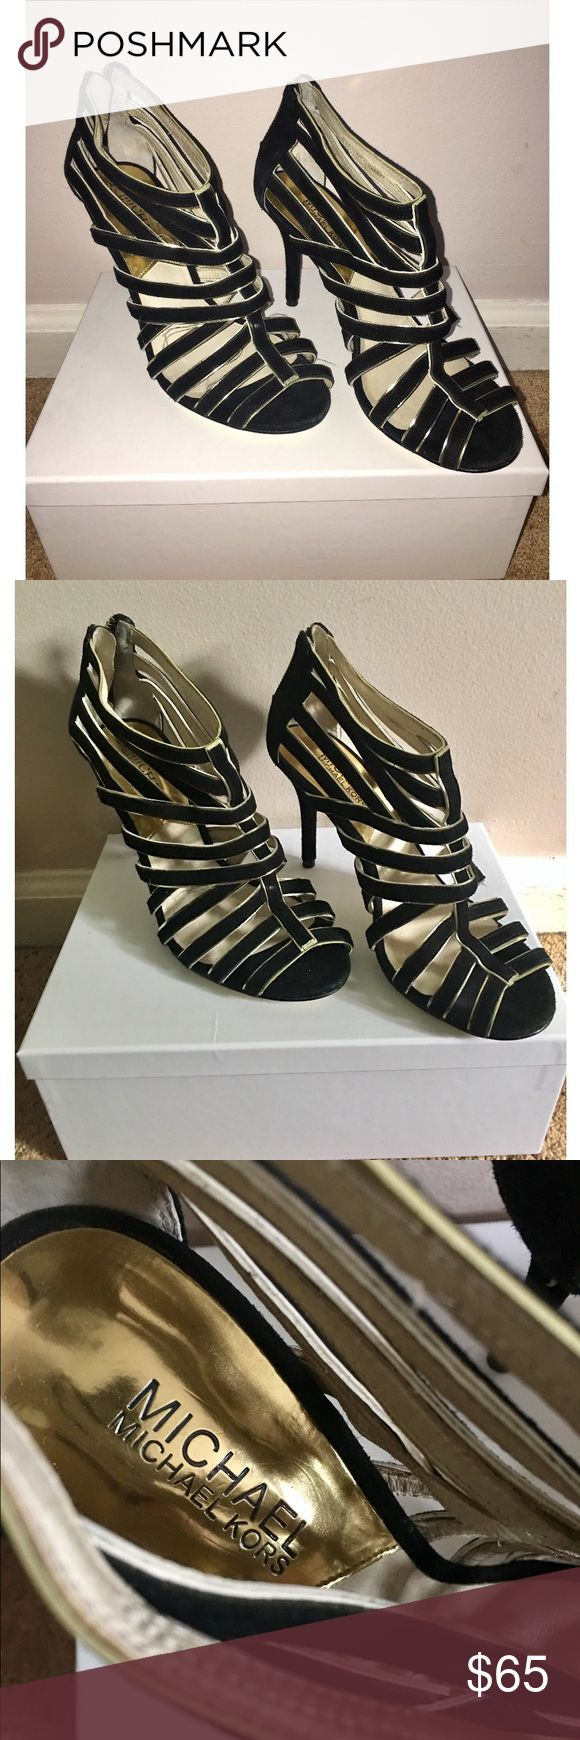 Michael Kors HIGH HEELS  Black and gold strappy high heels. 4in heel. Zipper close. Great condition, minor scuffs on bottom. Michael Kors Shoes Heels